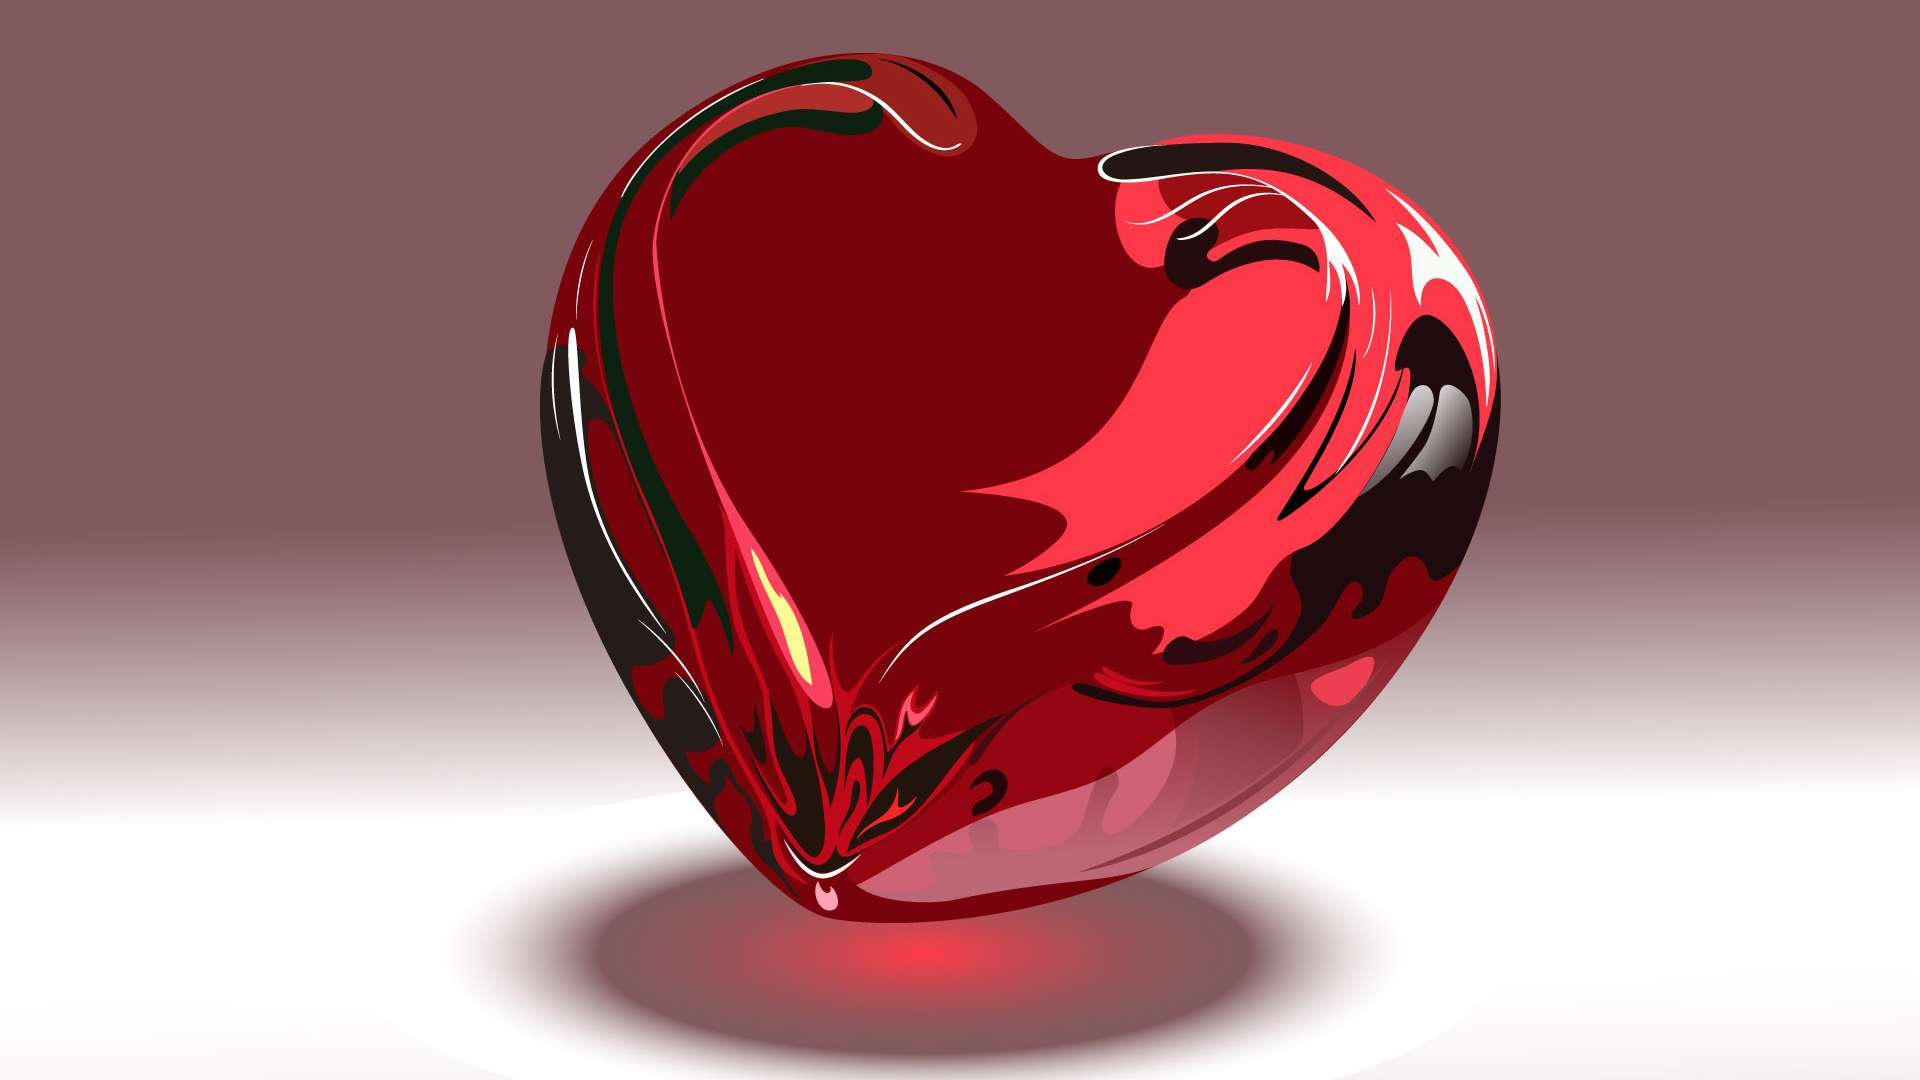 Heart 3d wallpaper desktop hd wallpaper download free image heart 3d wallpaper voltagebd Images